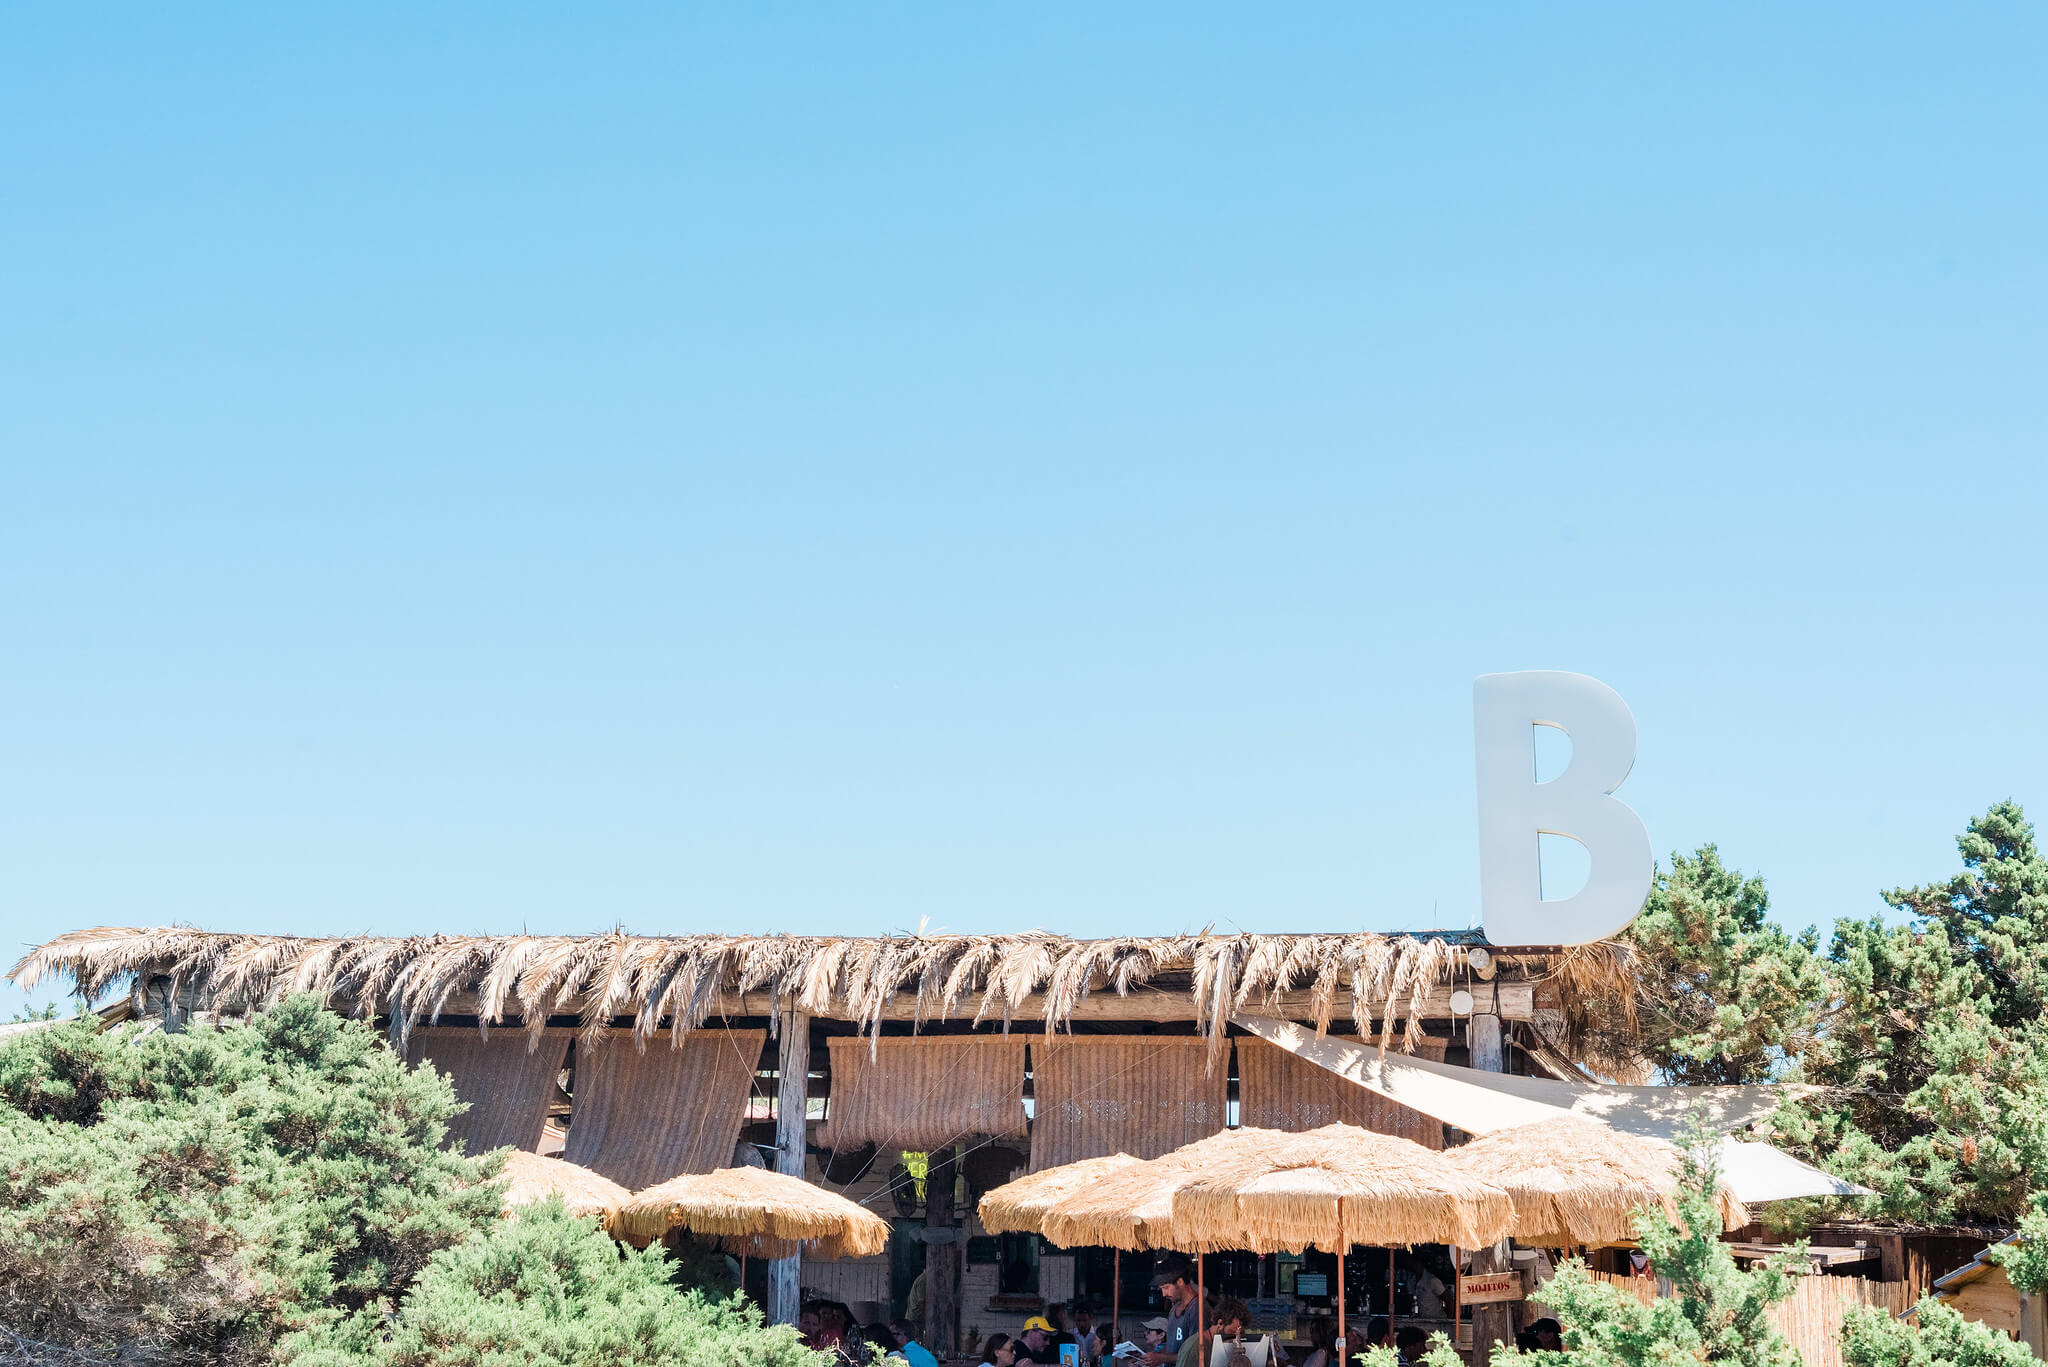 https://www.white-ibiza.com/wp-content/uploads/2020/03/formentera-beach-restaurants-beso-beach-2020-07.jpg